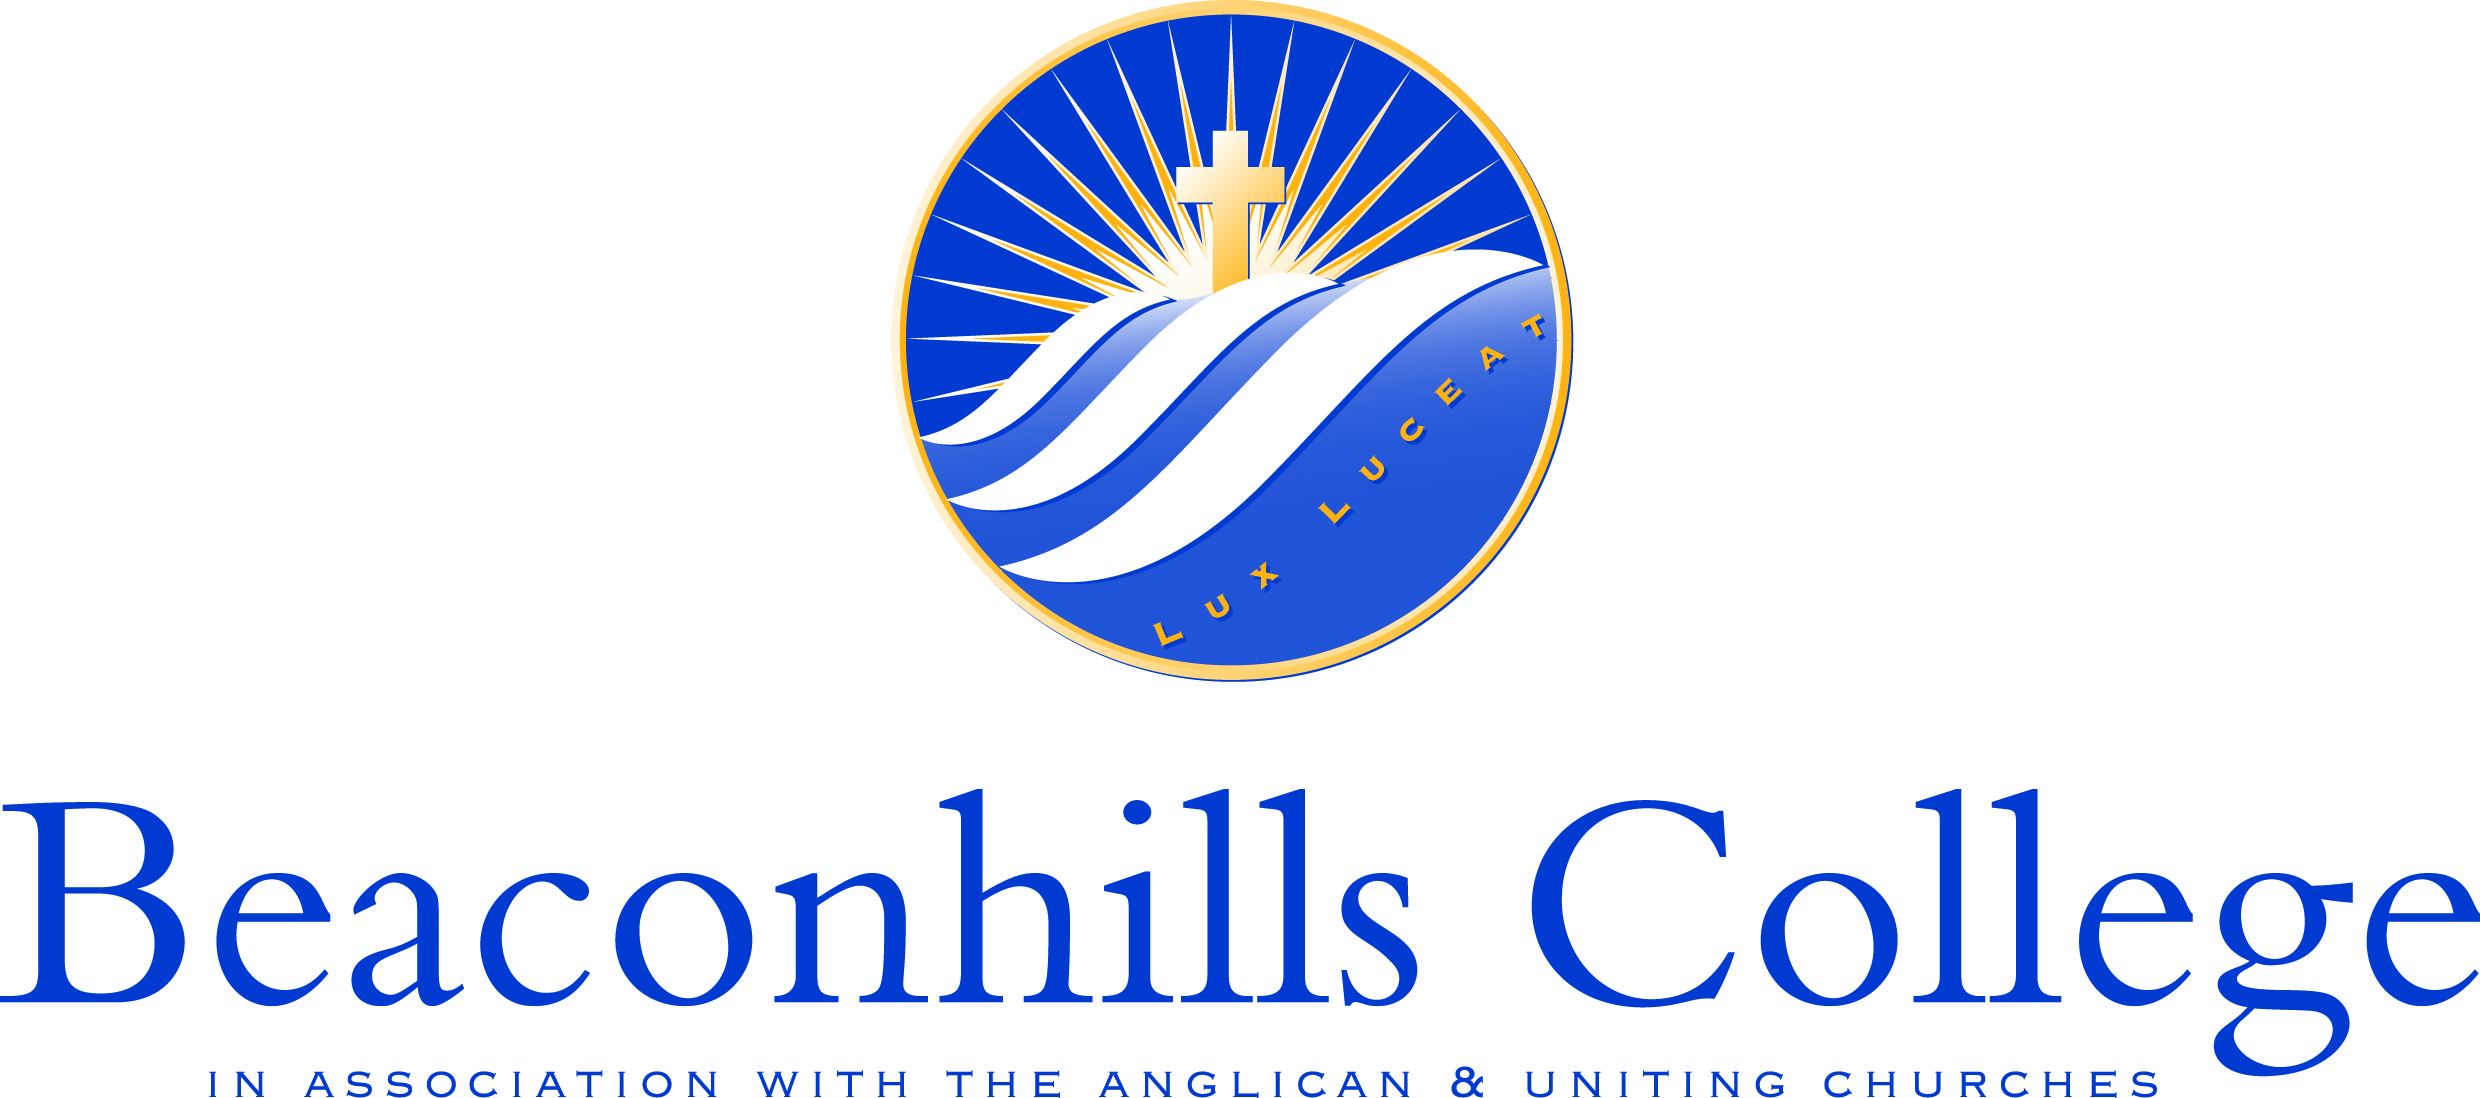 Beaconhills College